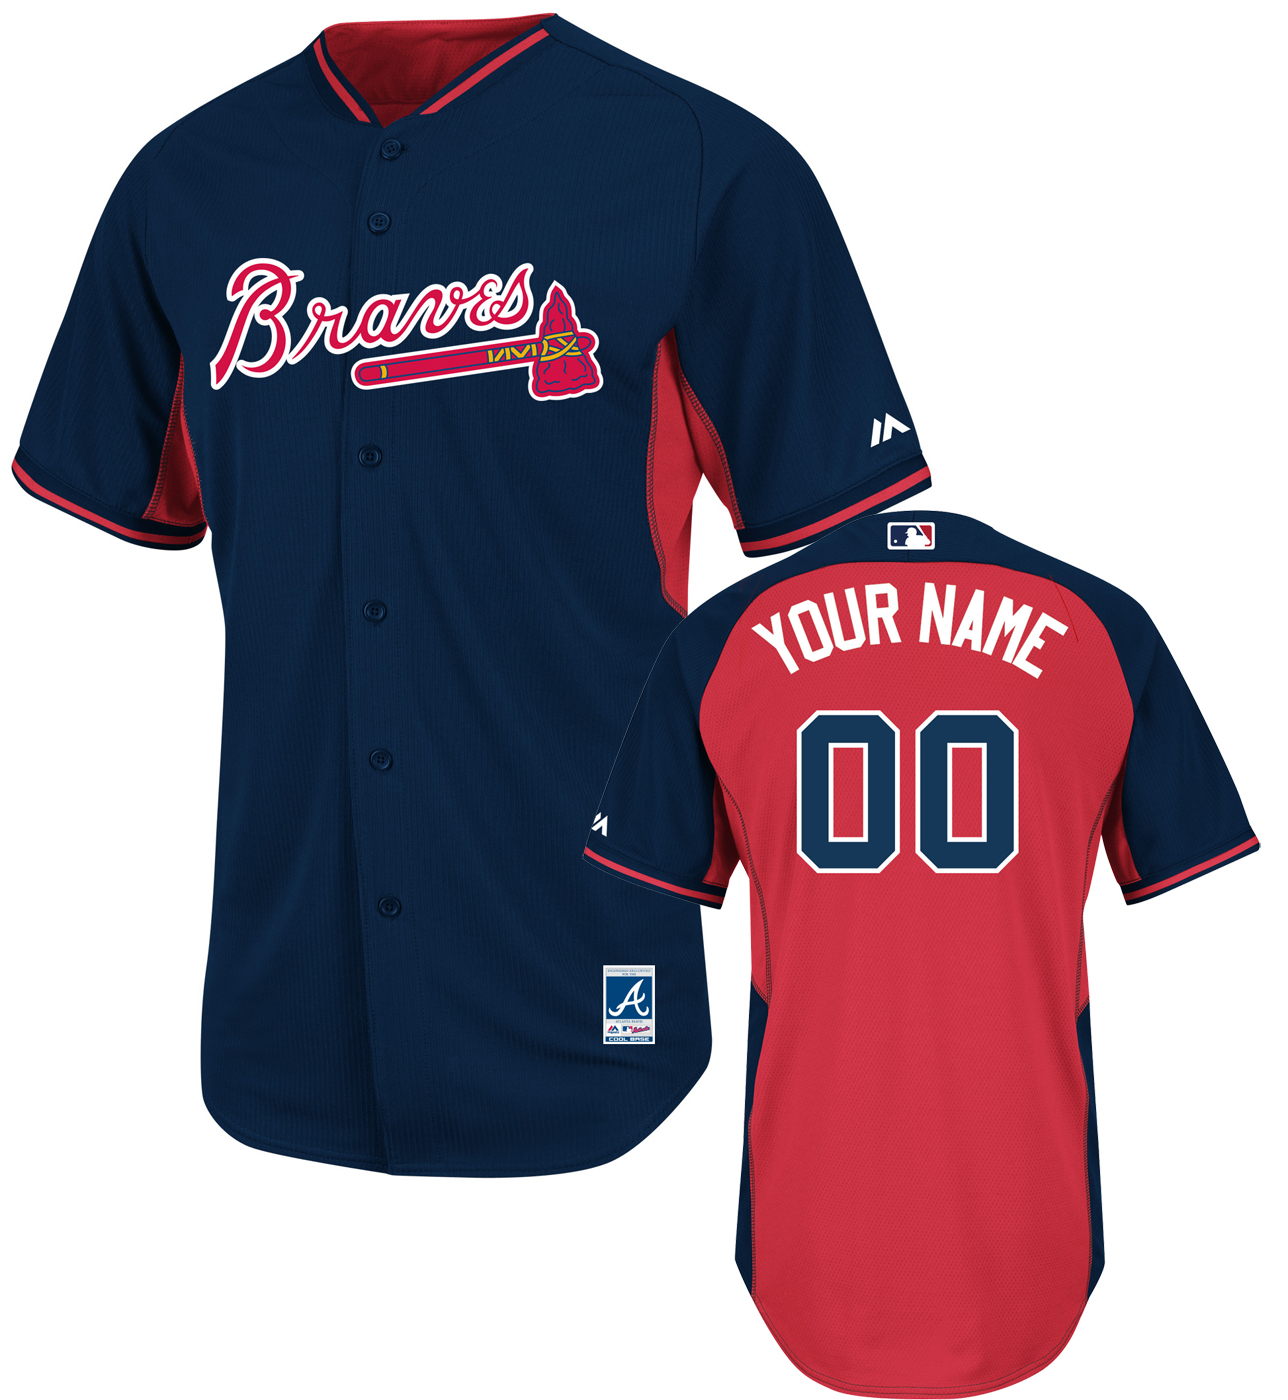 Sports Apparel Jerseys And Fan Gear At Fanatics Com in ...